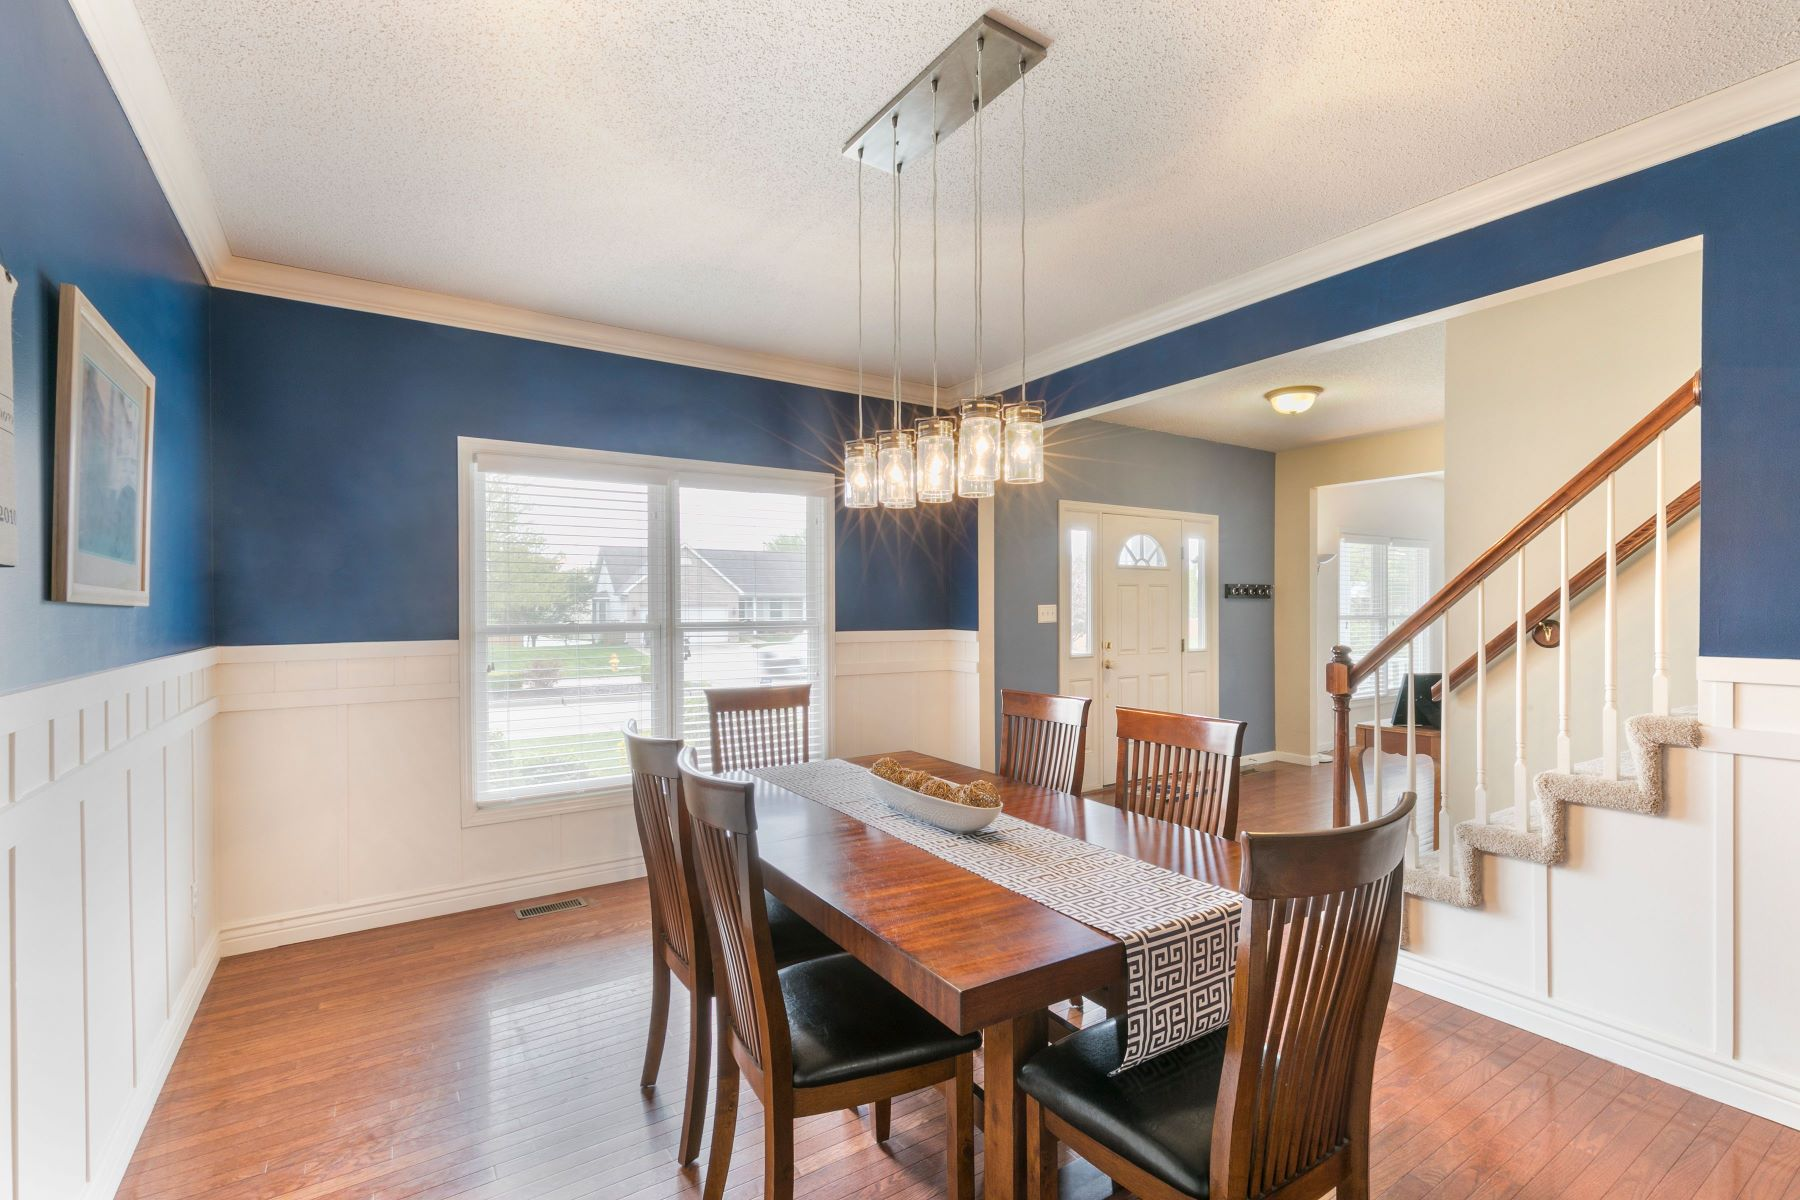 Additional photo for property listing at Villages at Dardenne 7193 Dardenne Prairie Drive O Fallon, Missouri 63368 United States